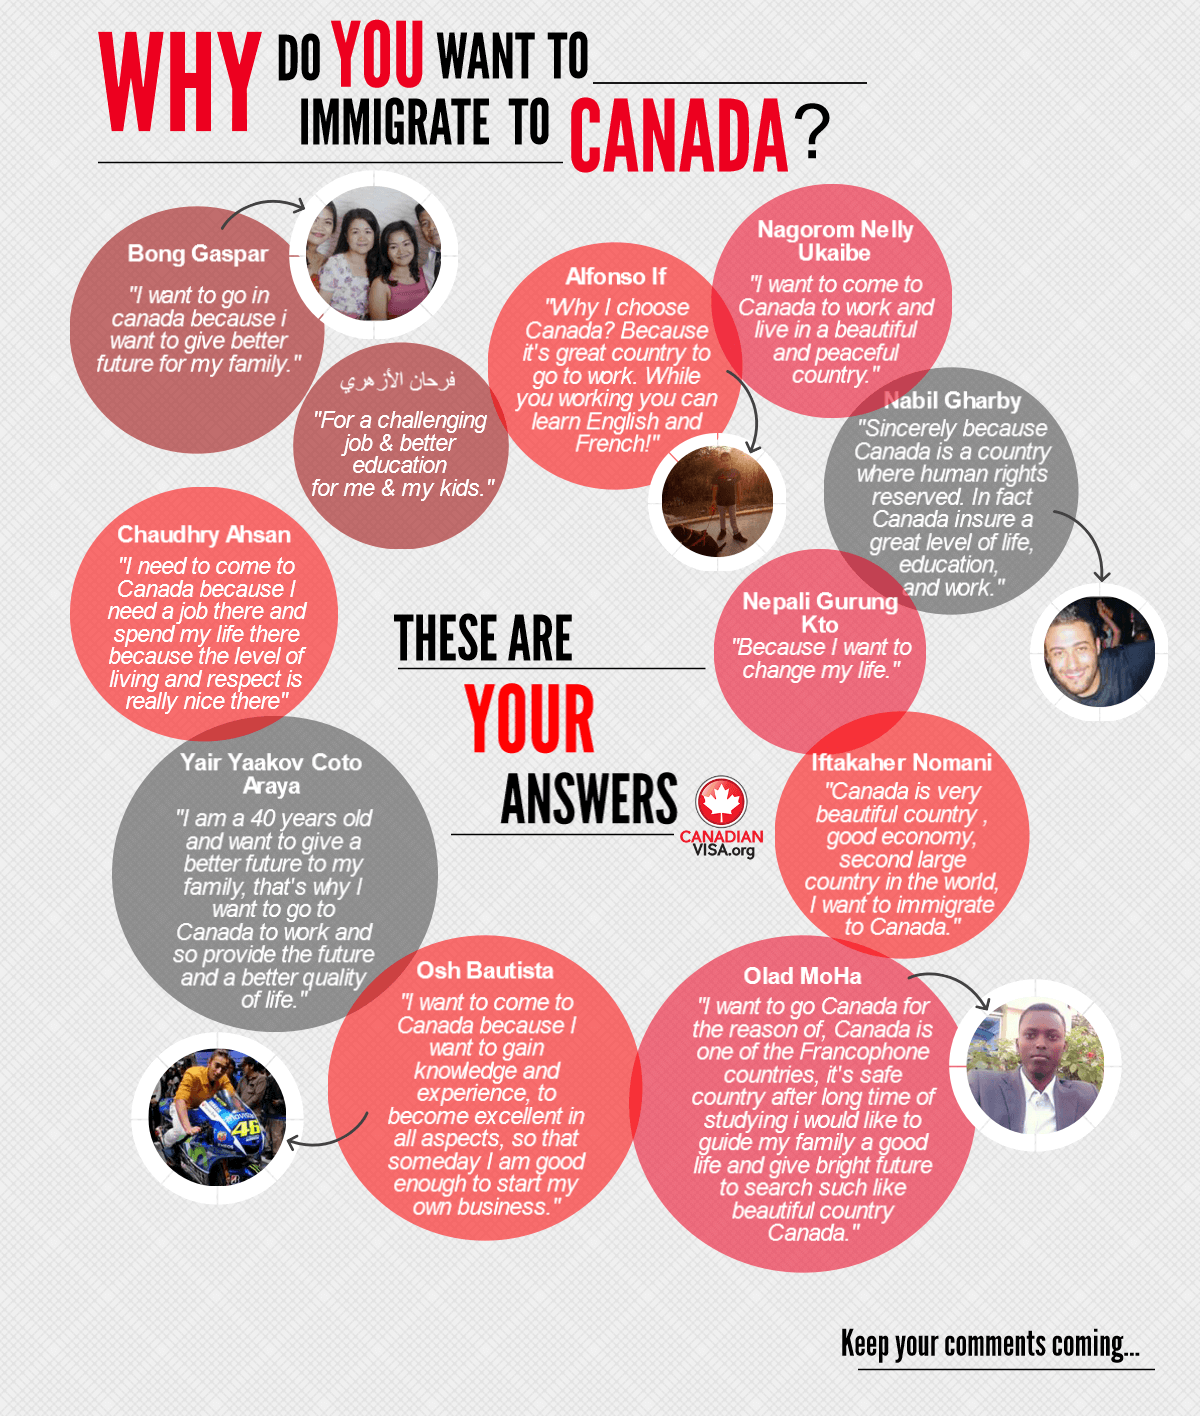 Vox pops on why people want to migrate to Canada